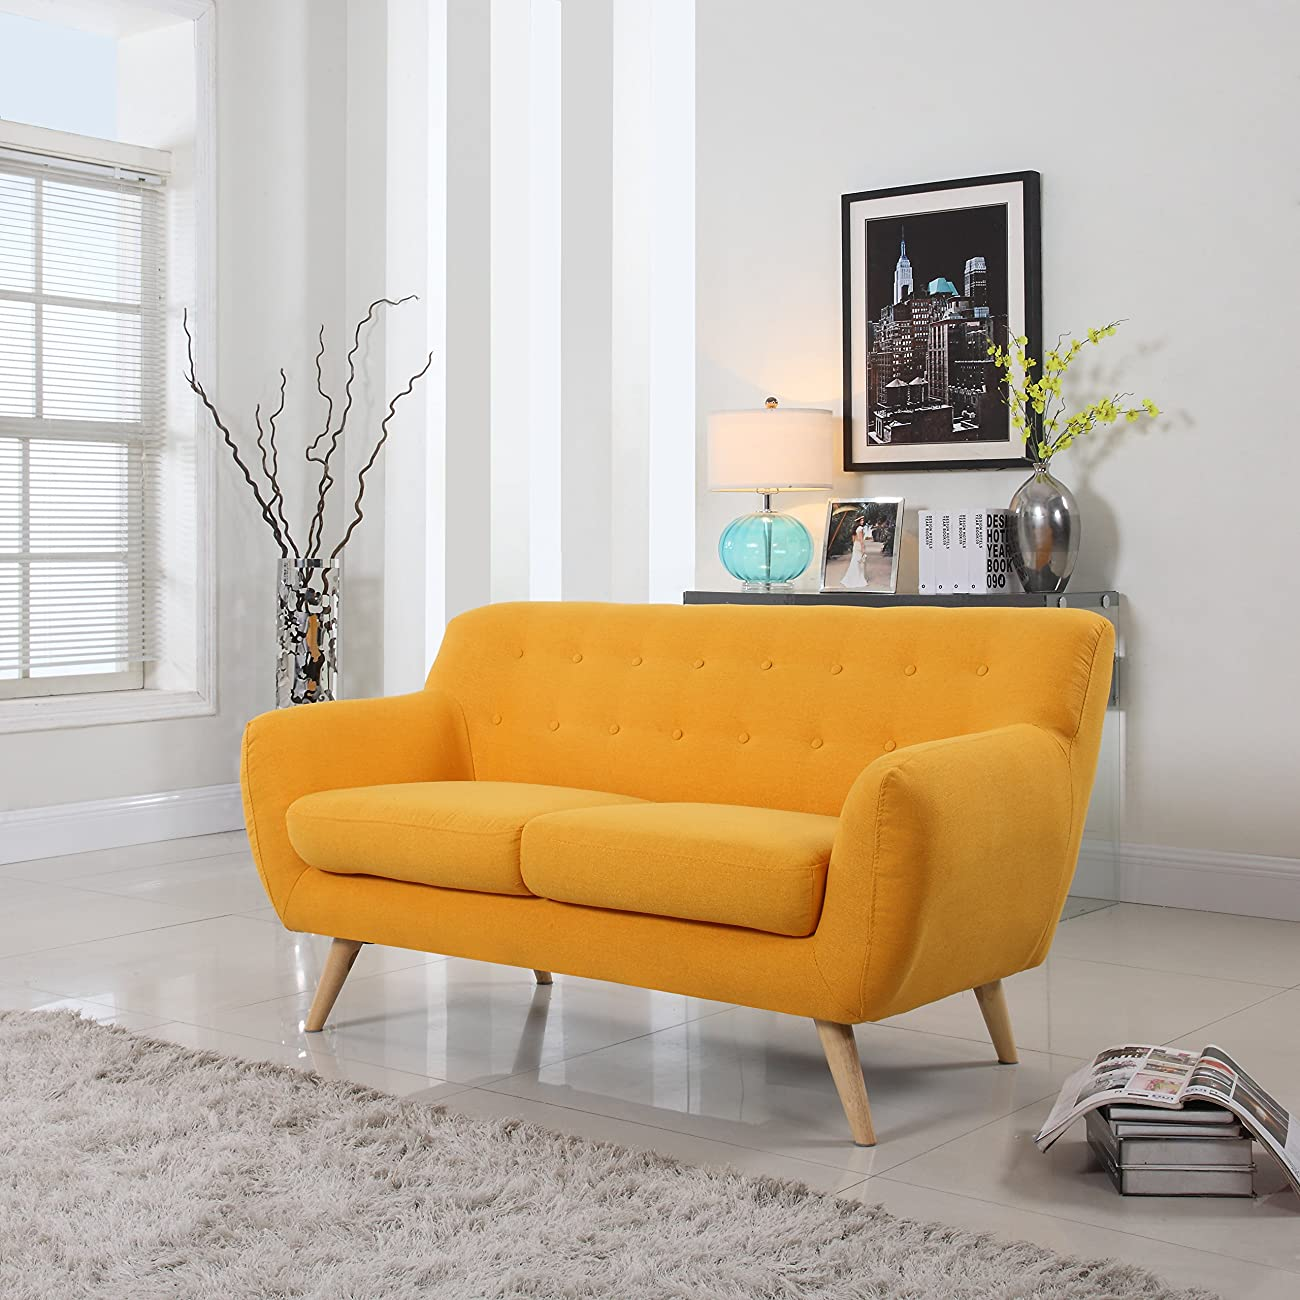 Mid Century Modern Style Sofa / Love Seat Red, Grey, Yellow, Blue - 2 Seat, 3 Seat (Yellow, 2 Seater) 0